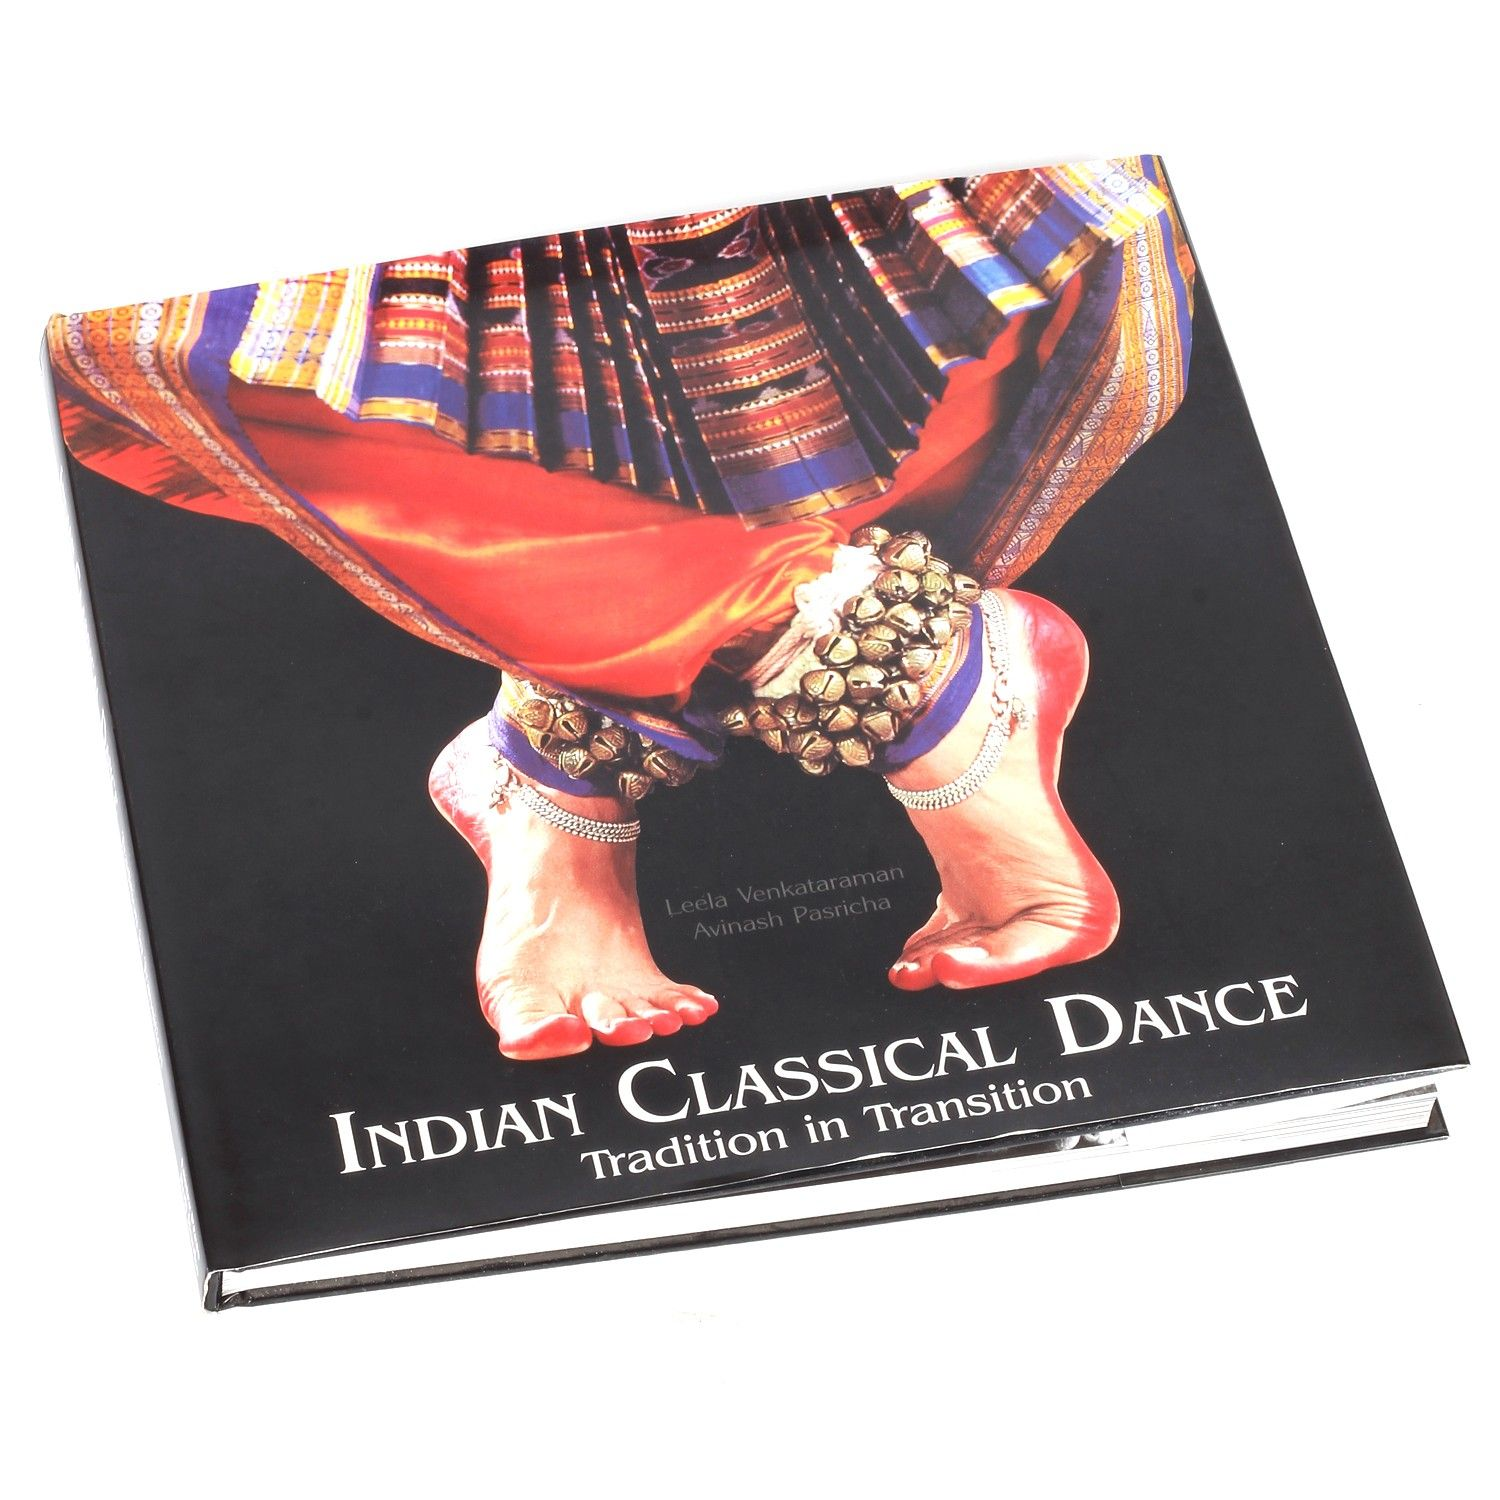 Good Indian Classical Dance   A Beautifully Put Together Book That Focuses On  The Evolution Of Classical Indian Dances In Their Former Glory.